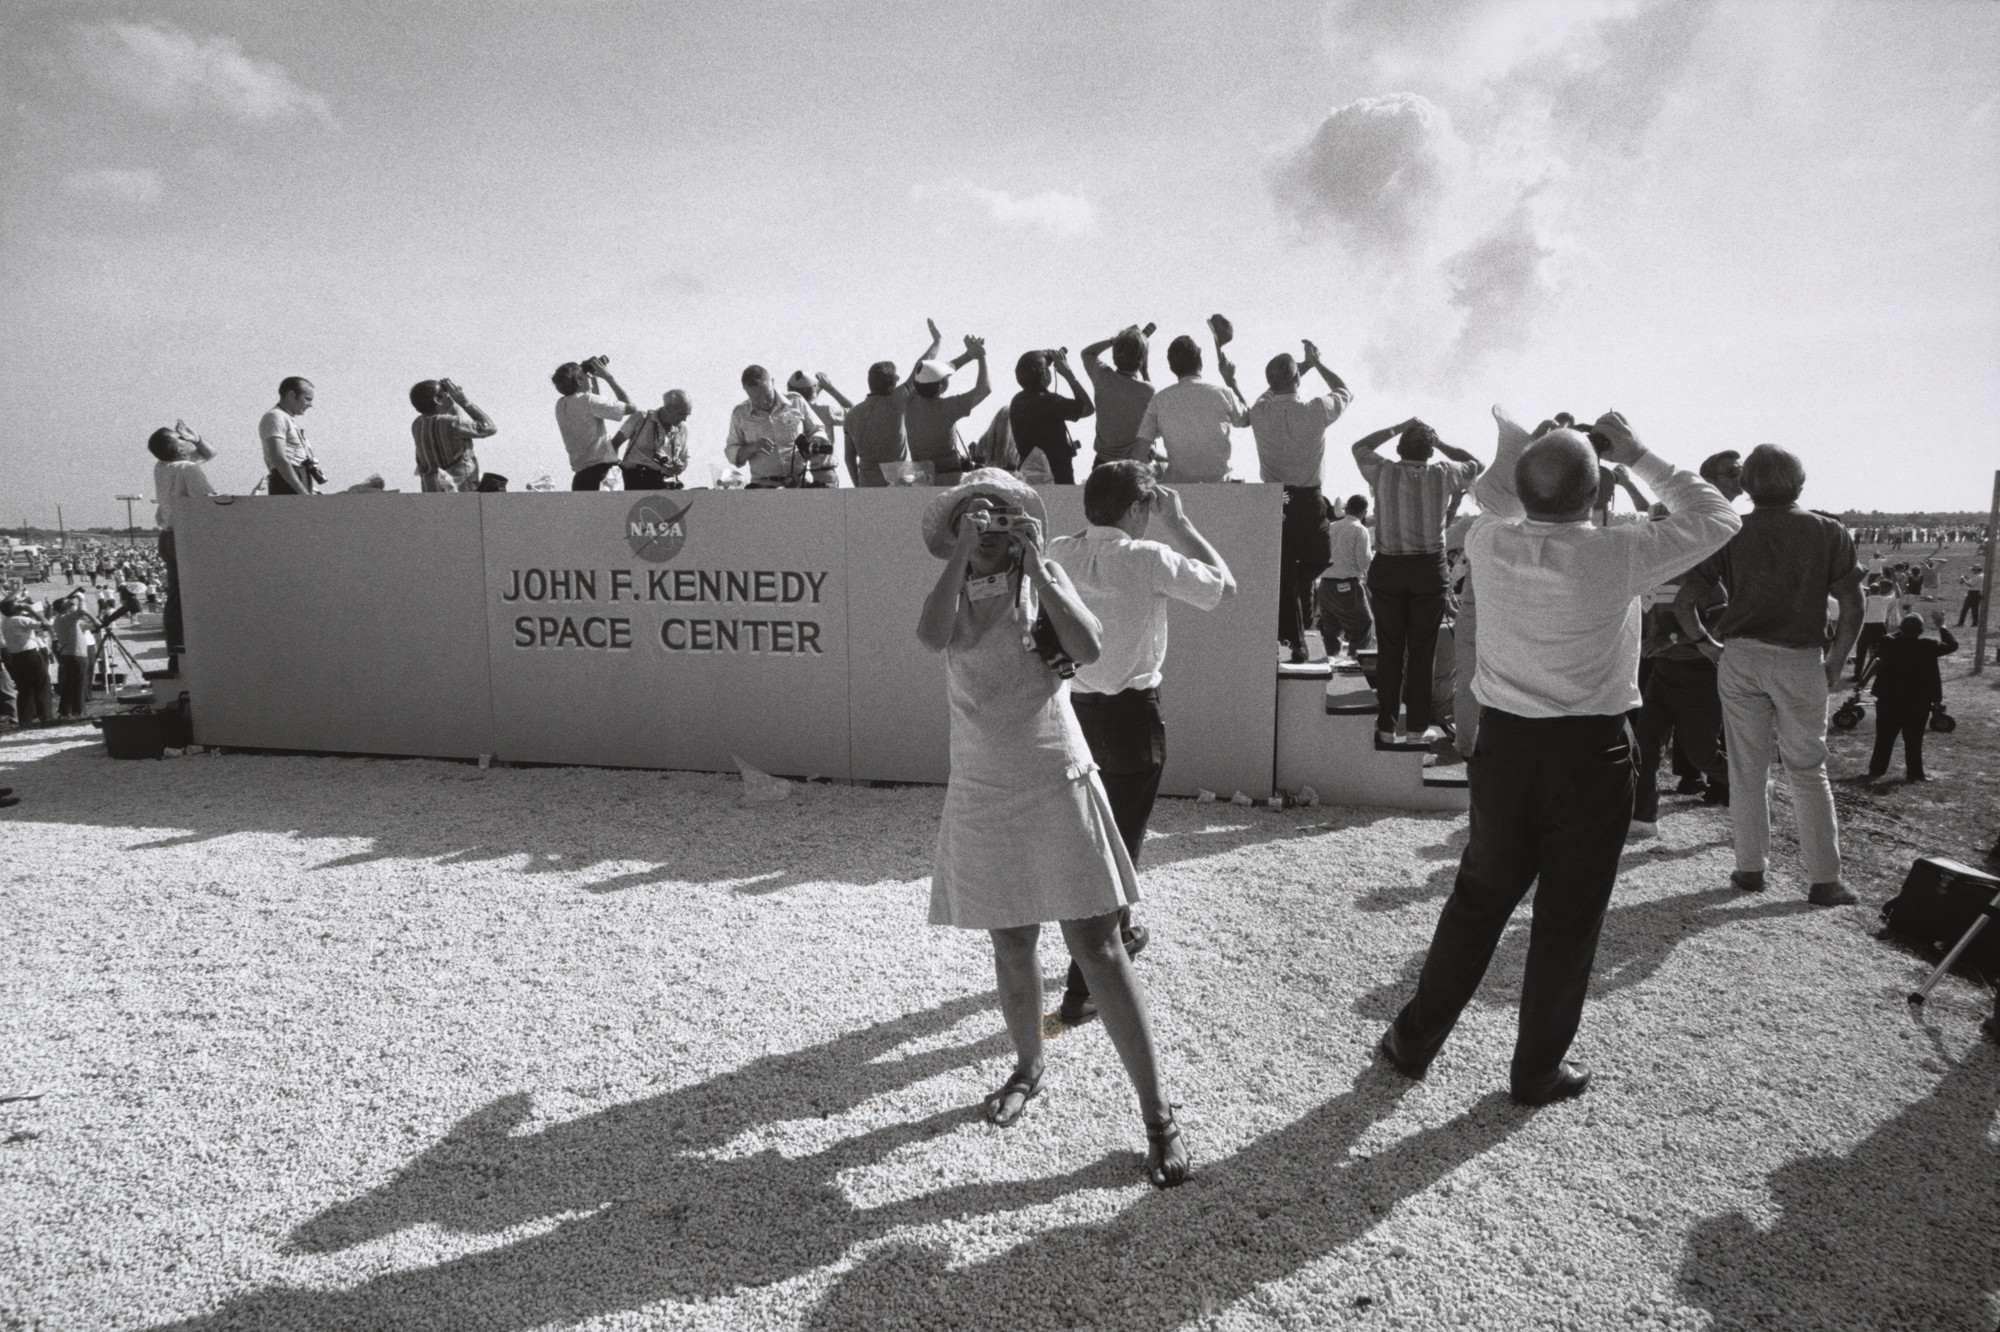 Garry Winogrand. Apollo 11 Moon Shot, Cape Kennedy, Florida. 1969